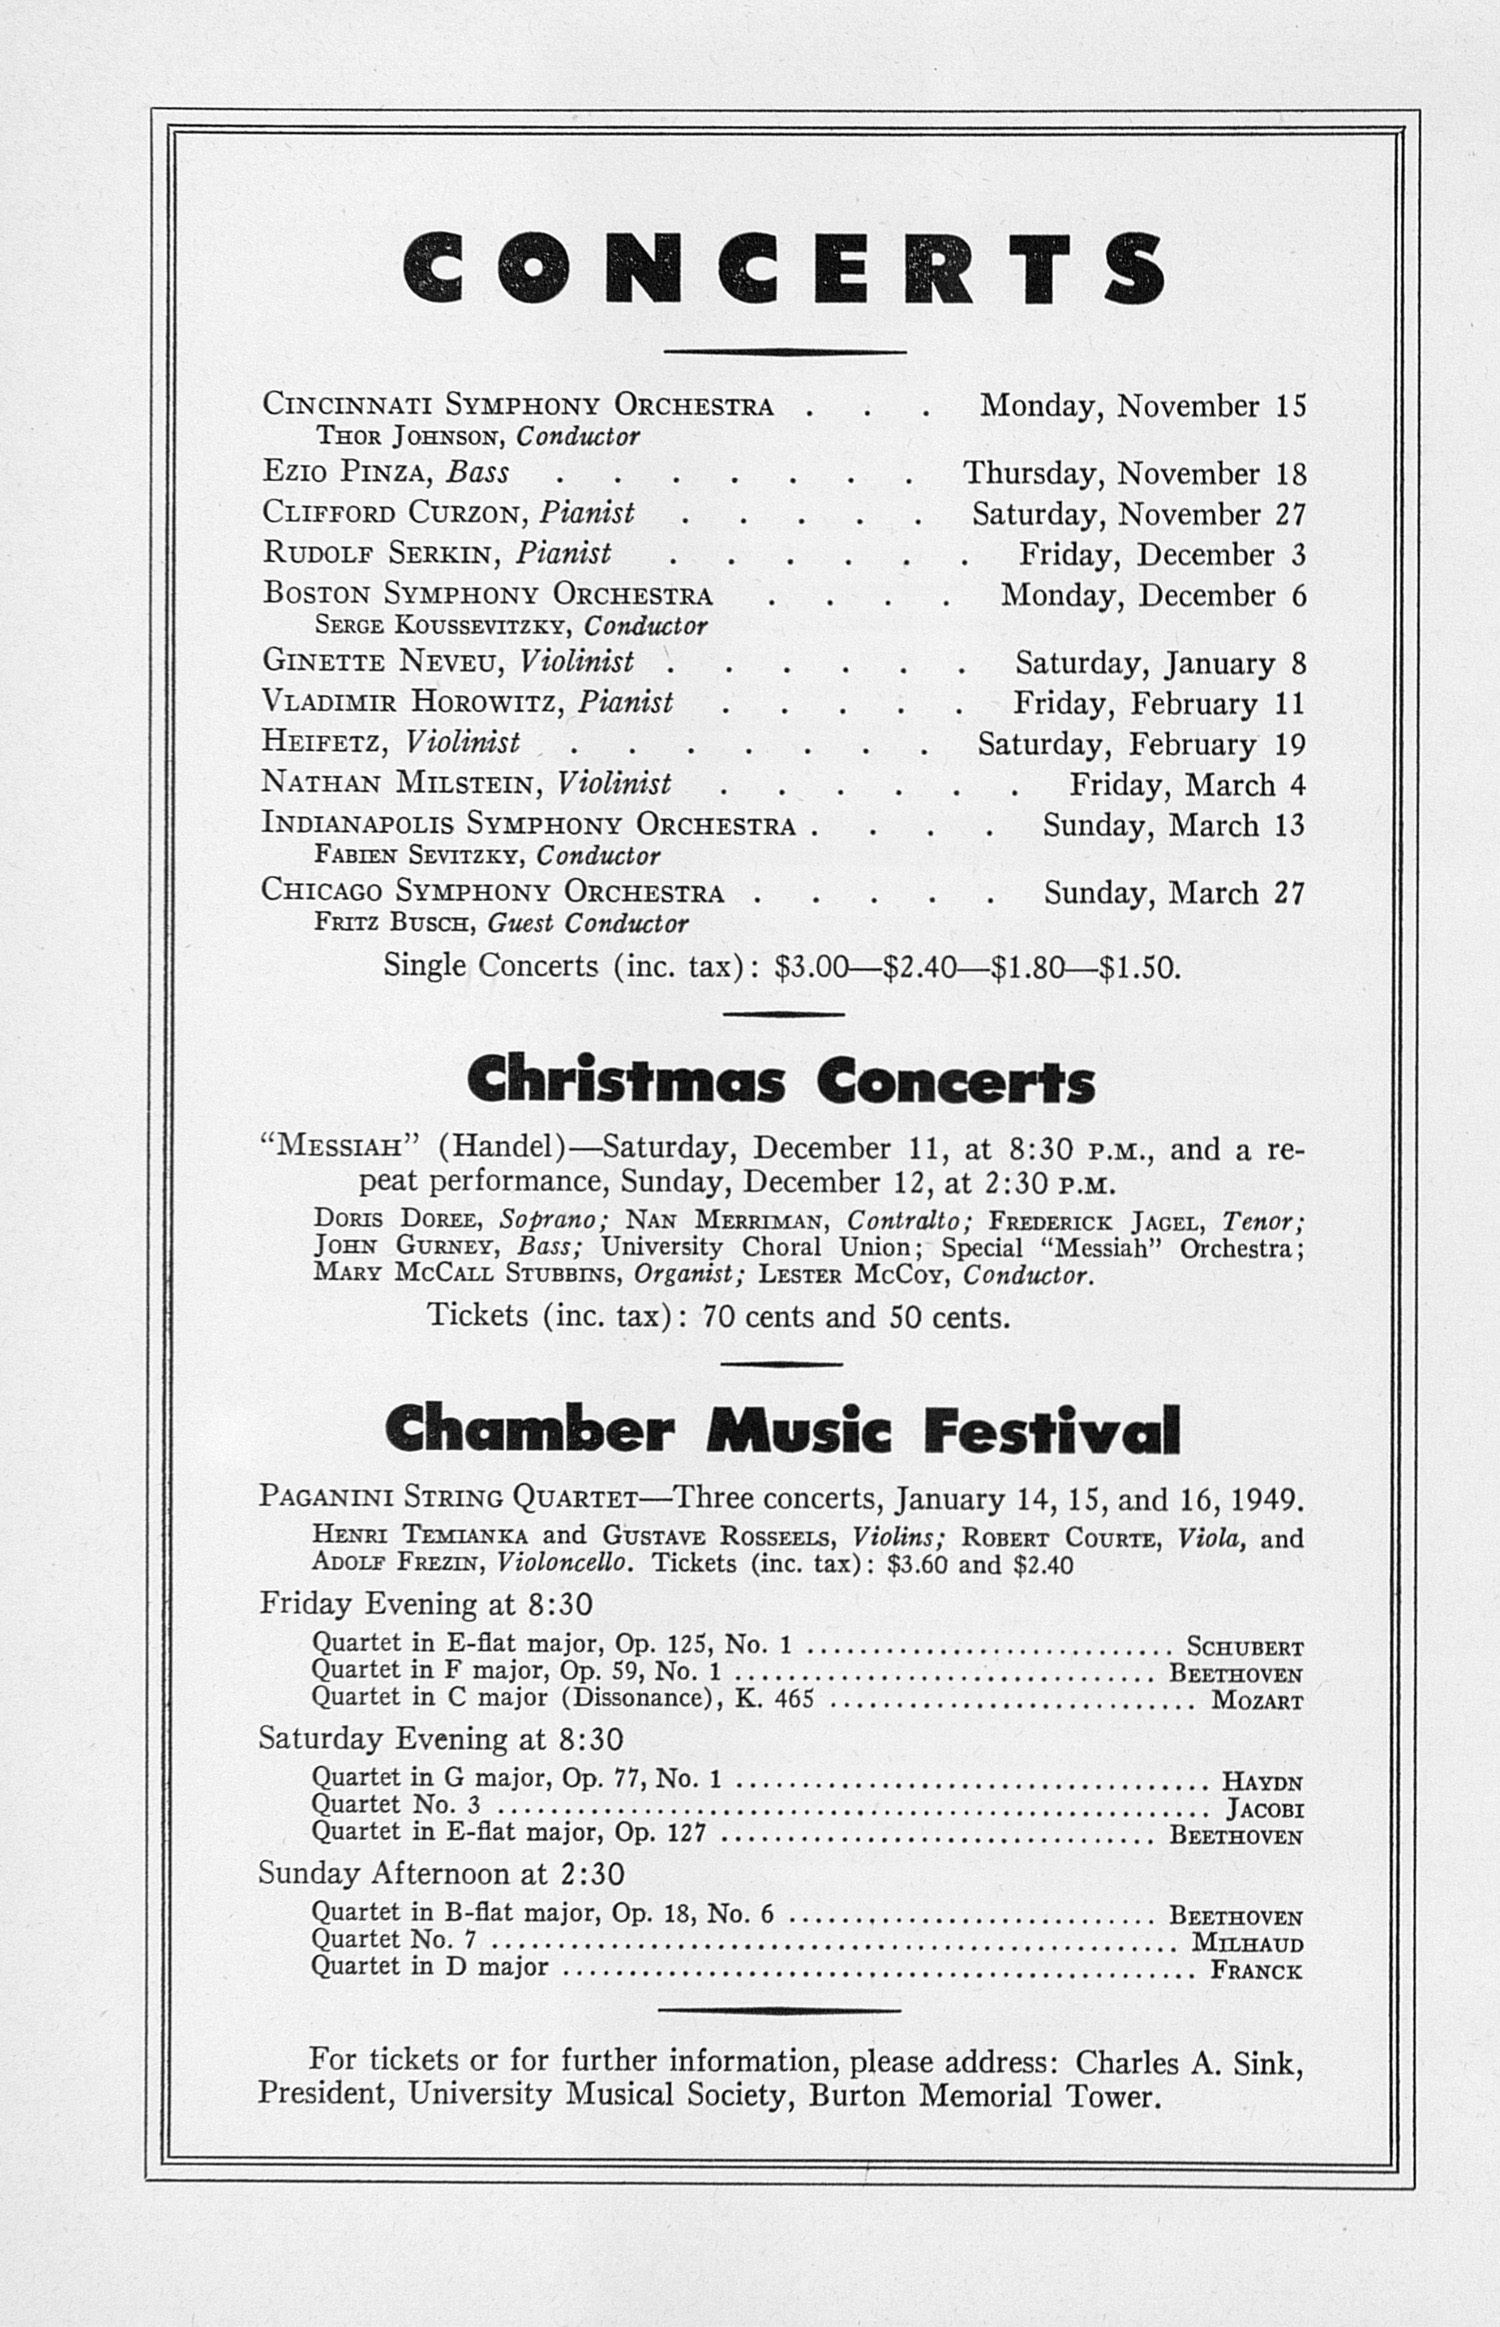 UMS Concert Program, November 7, 1948: Seventieth Annual Choral Union Concert Series -- The Cleveland Orchestra image